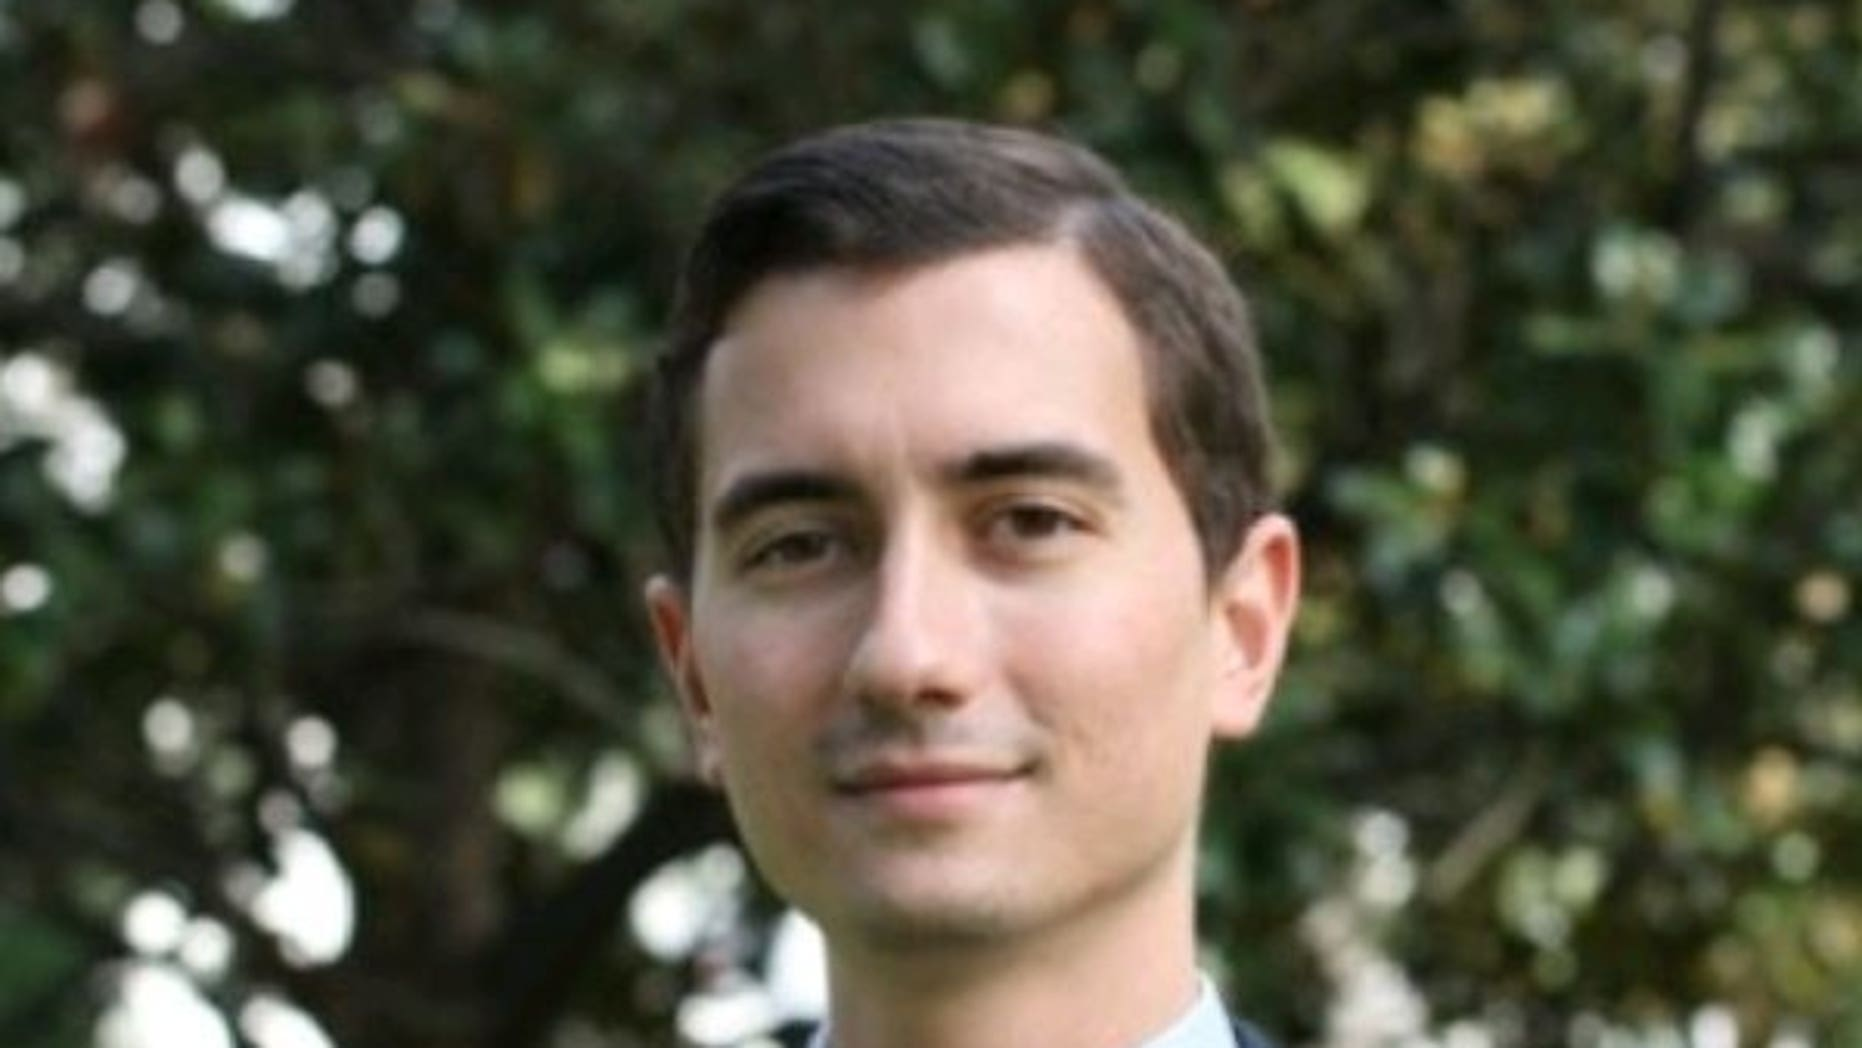 Jackson Cosko pleaded guilty Friday to charges stemming from posting to the Internet the personal information of five GOP senators.